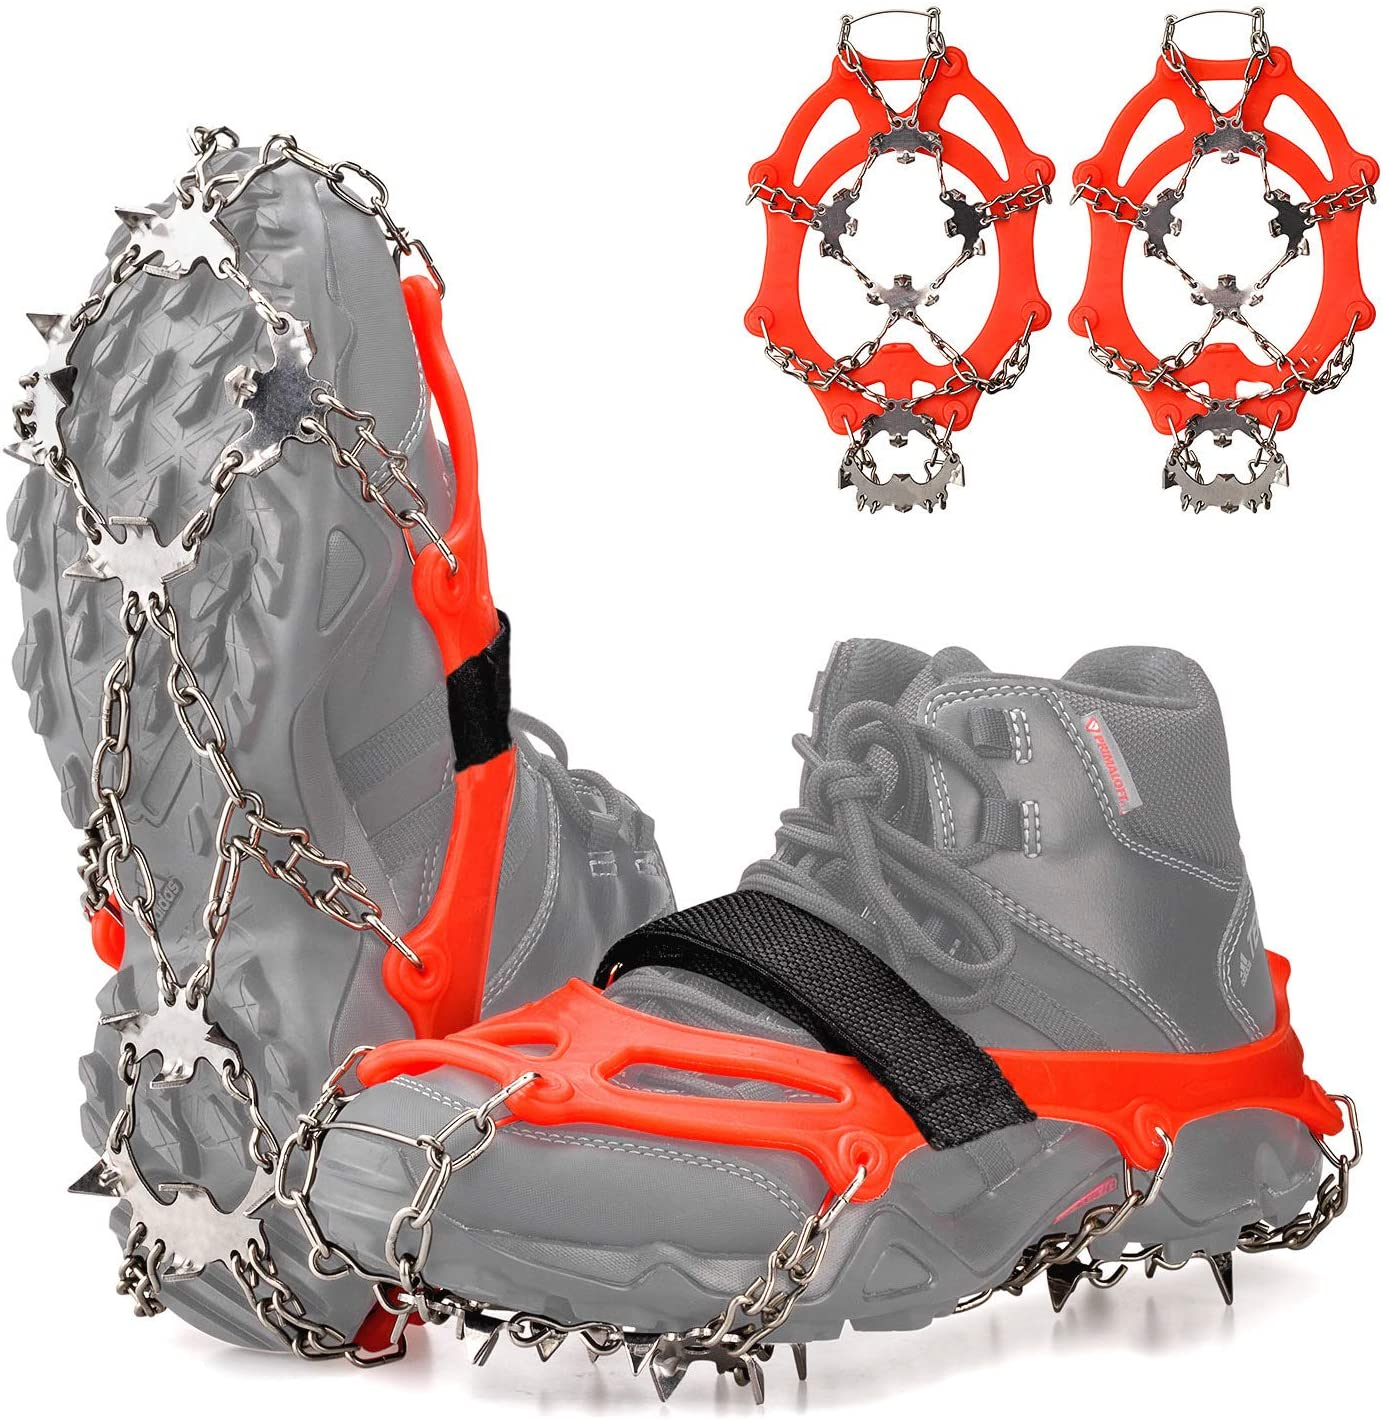 ZUXNZUX Ice Snow Grips Traction Crampons Cleats 11 Spikes Stainless Steel Anti-Slip Microspikes Winter Durable Silicone Over Shoe for Hiking Fishing Walking Mountaineering Outdoor Travelling